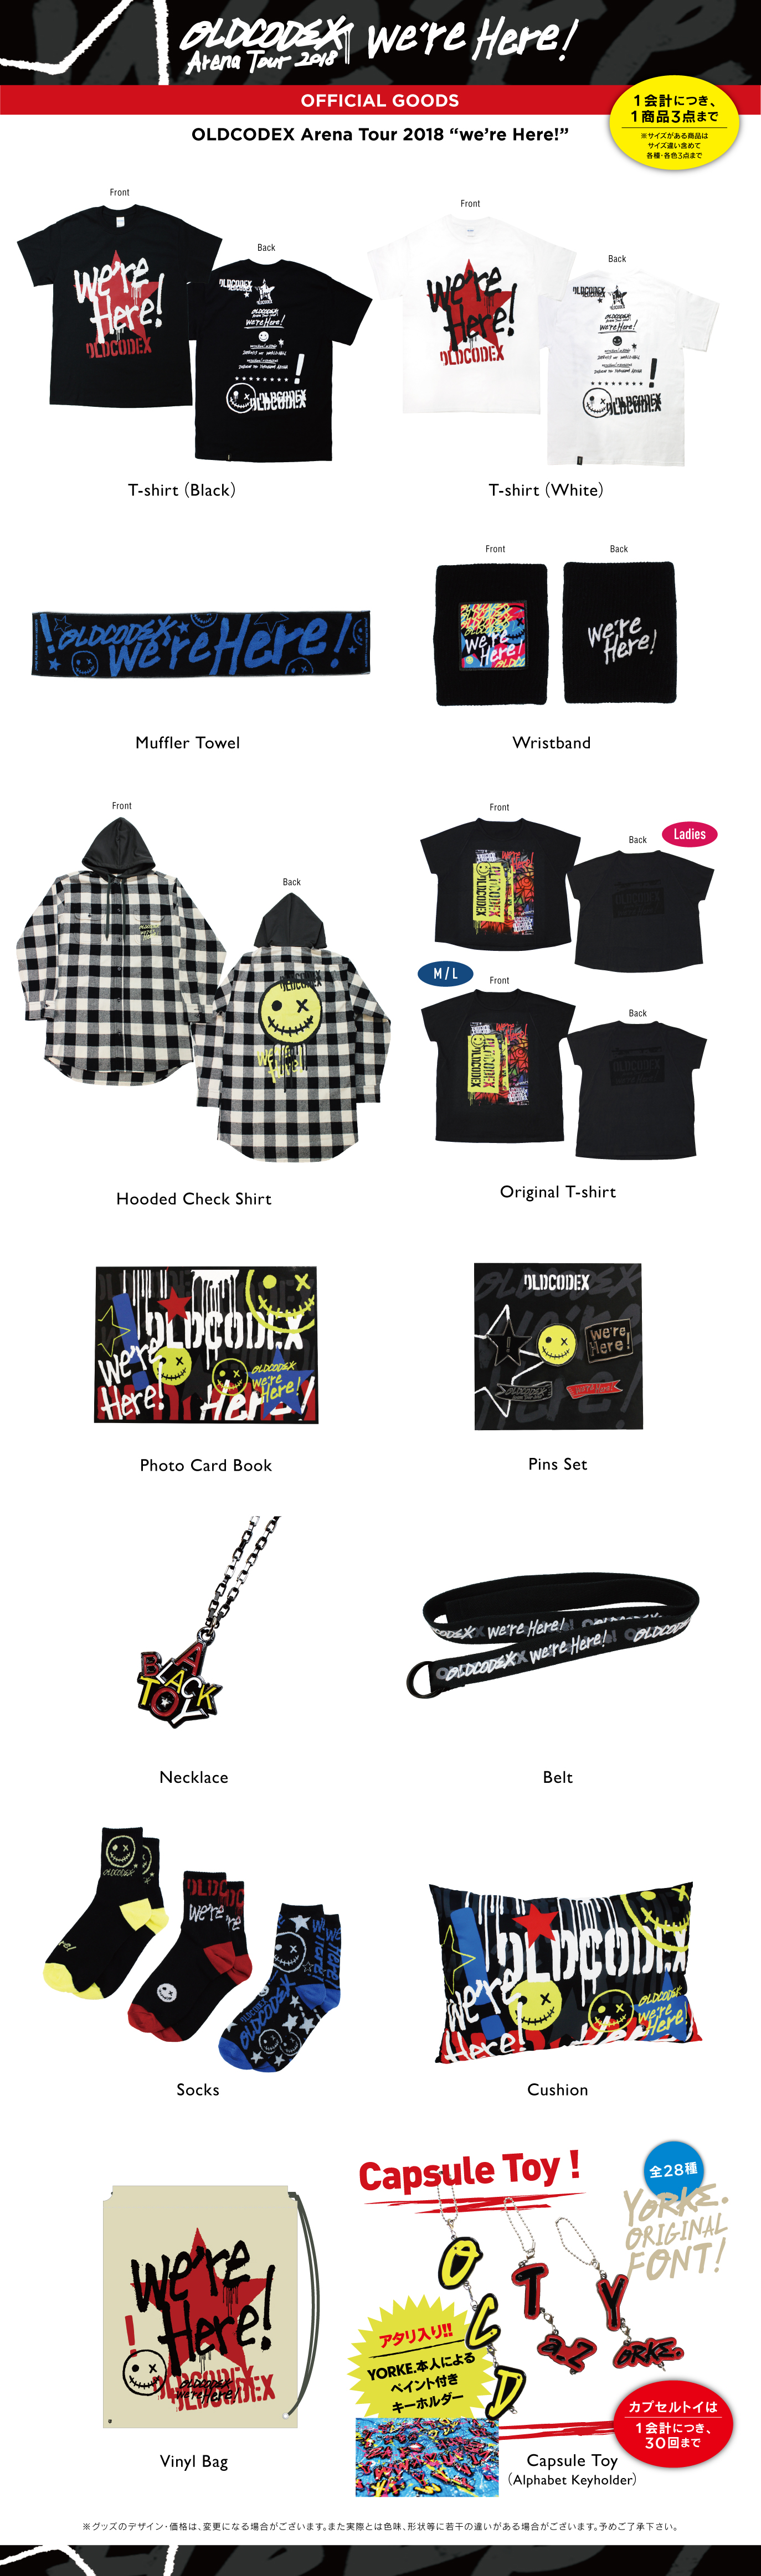 "OLDCODEX Arena Tour 2018 ""we're Here!"" OFFICIAL GOODS"